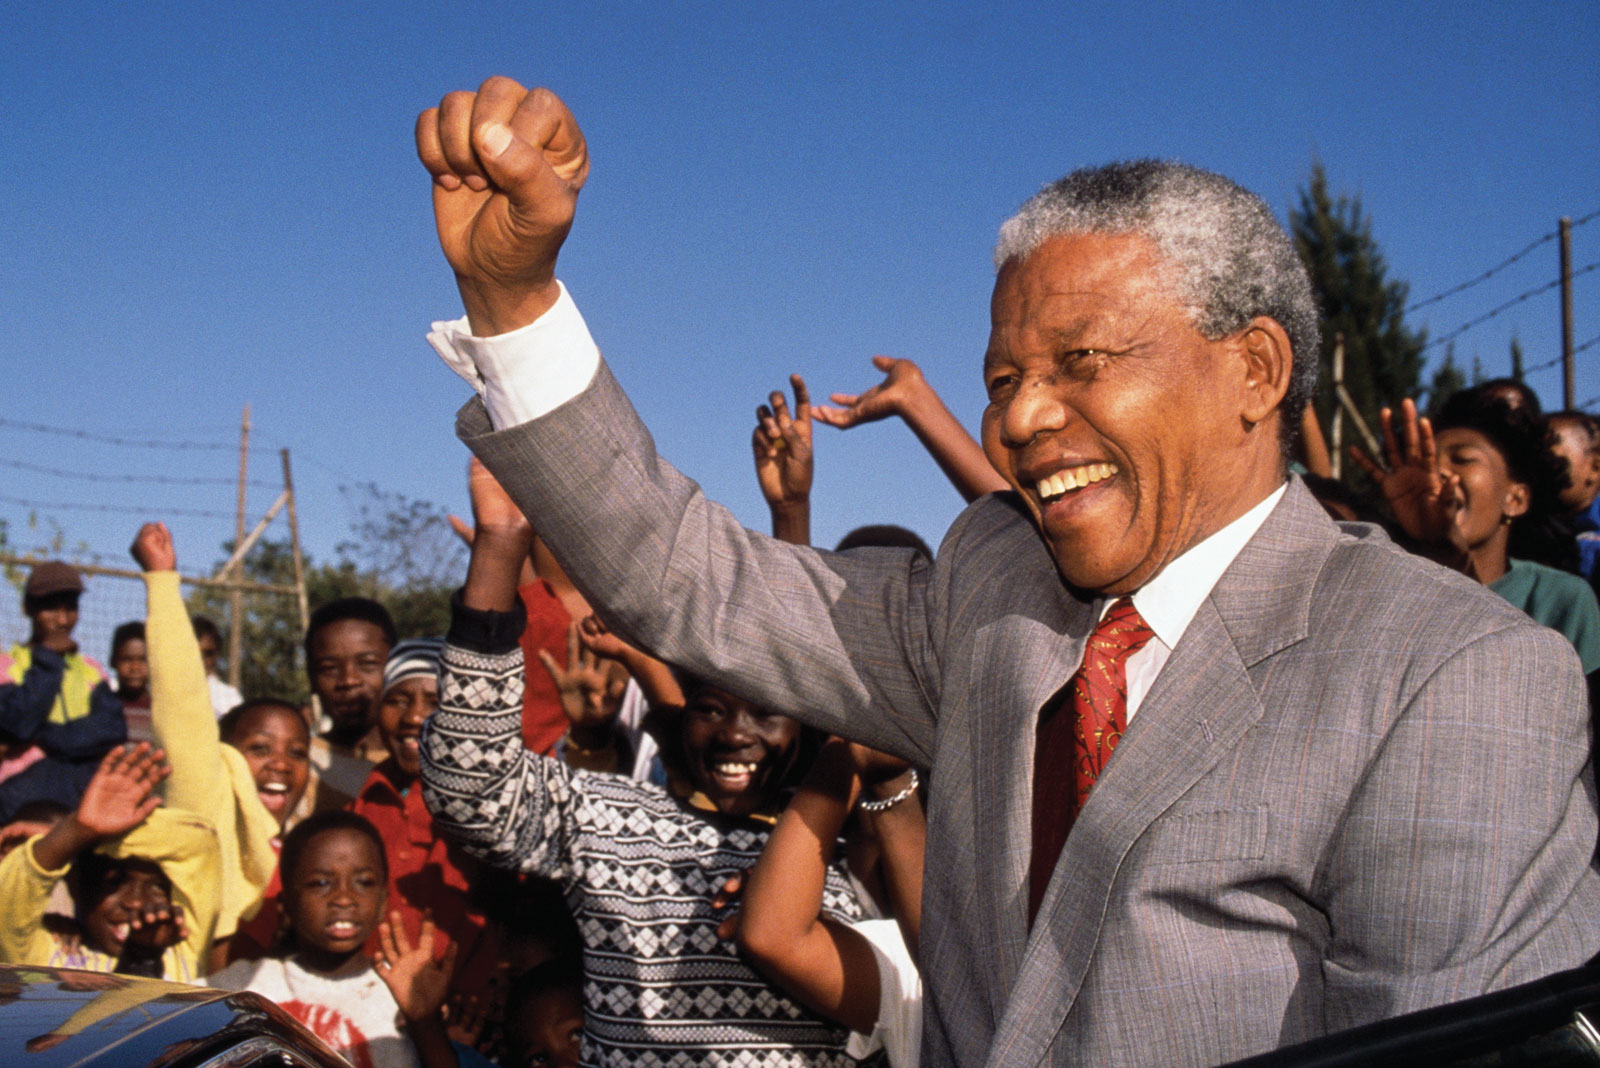 https://static.blog4ever.com/2012/09/713297/Mandela-PointLeve.jpg